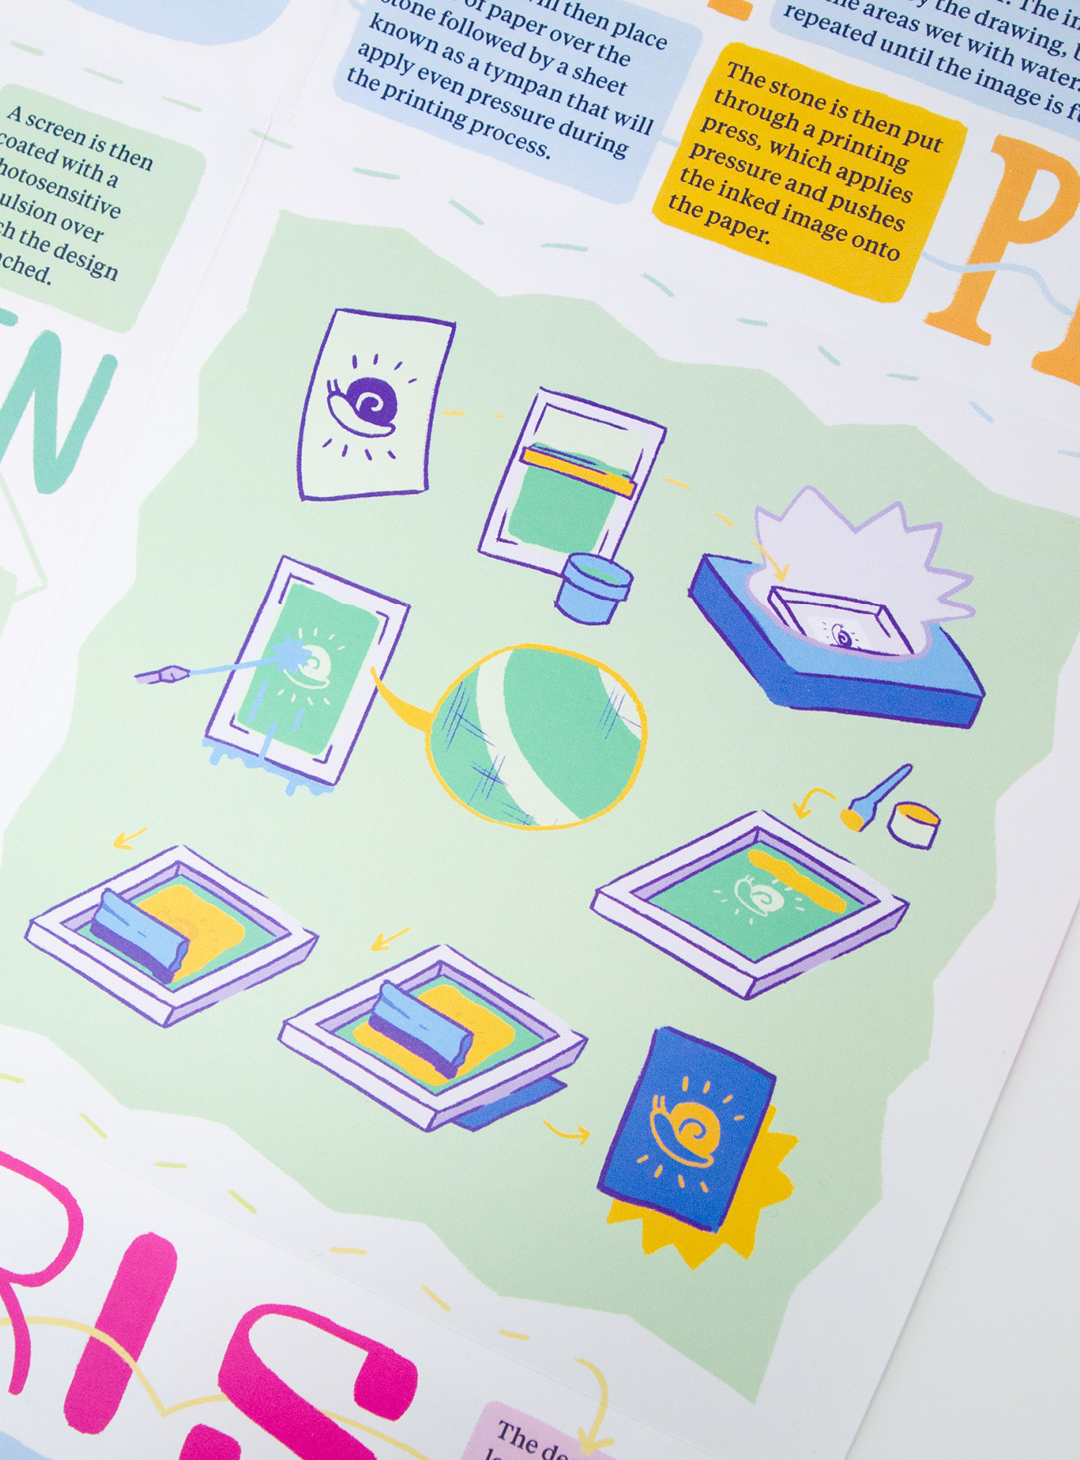 Detail shot of the illustration for screen printing. Set on a light green background, the illustration shows the process of printing with a green and purple color scheme.